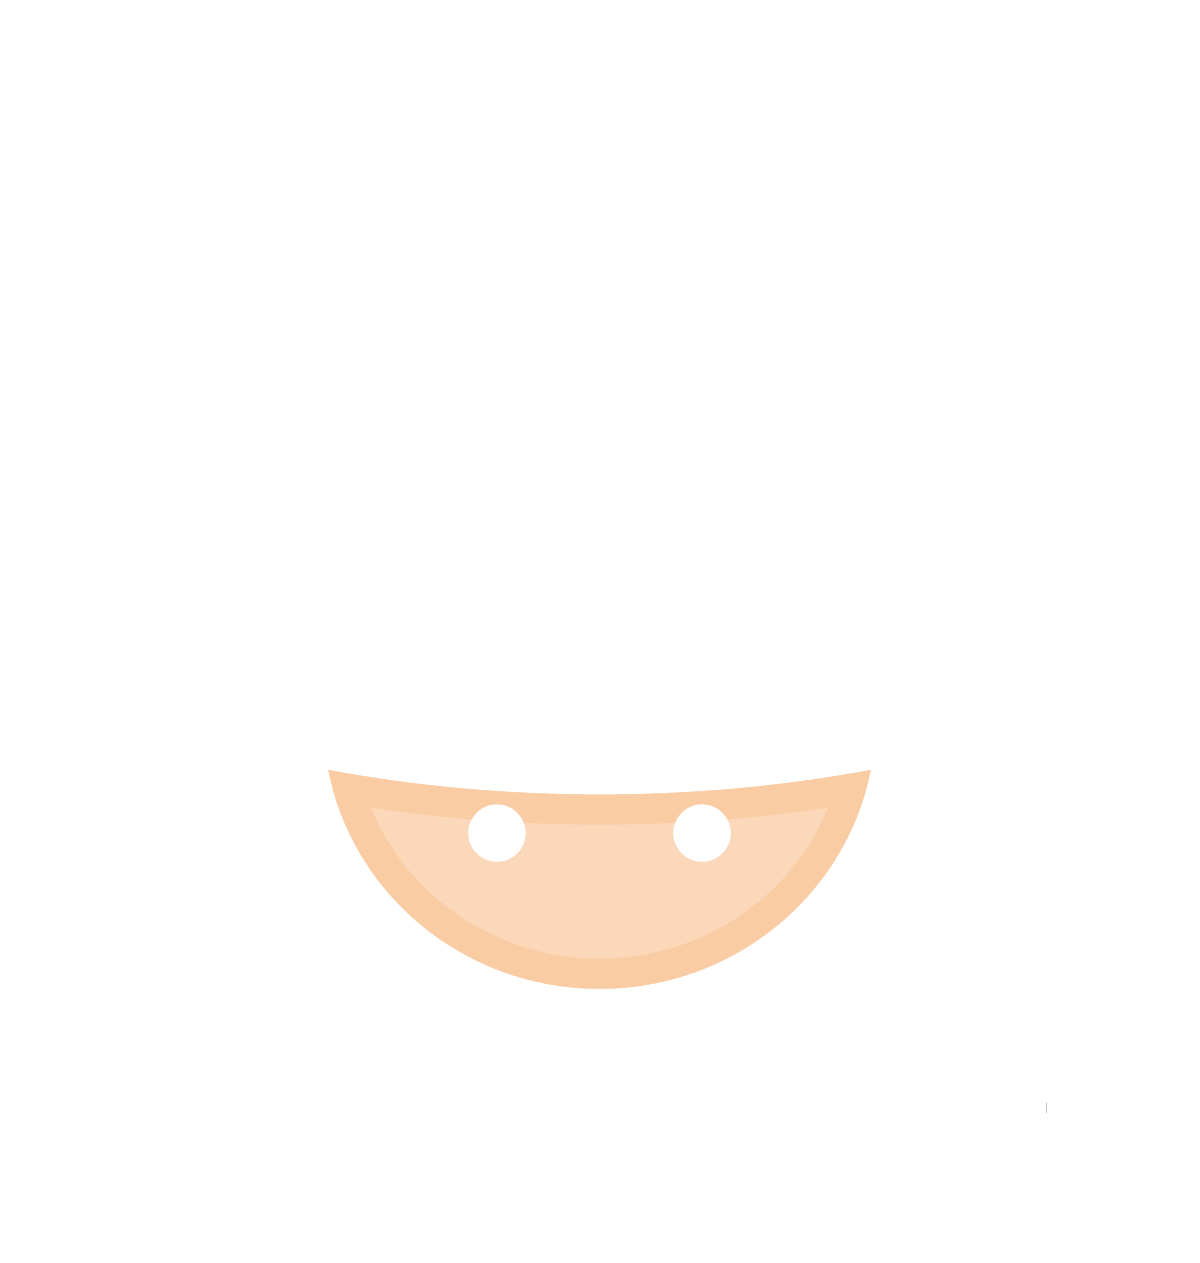 Ministry of Testing logo in white